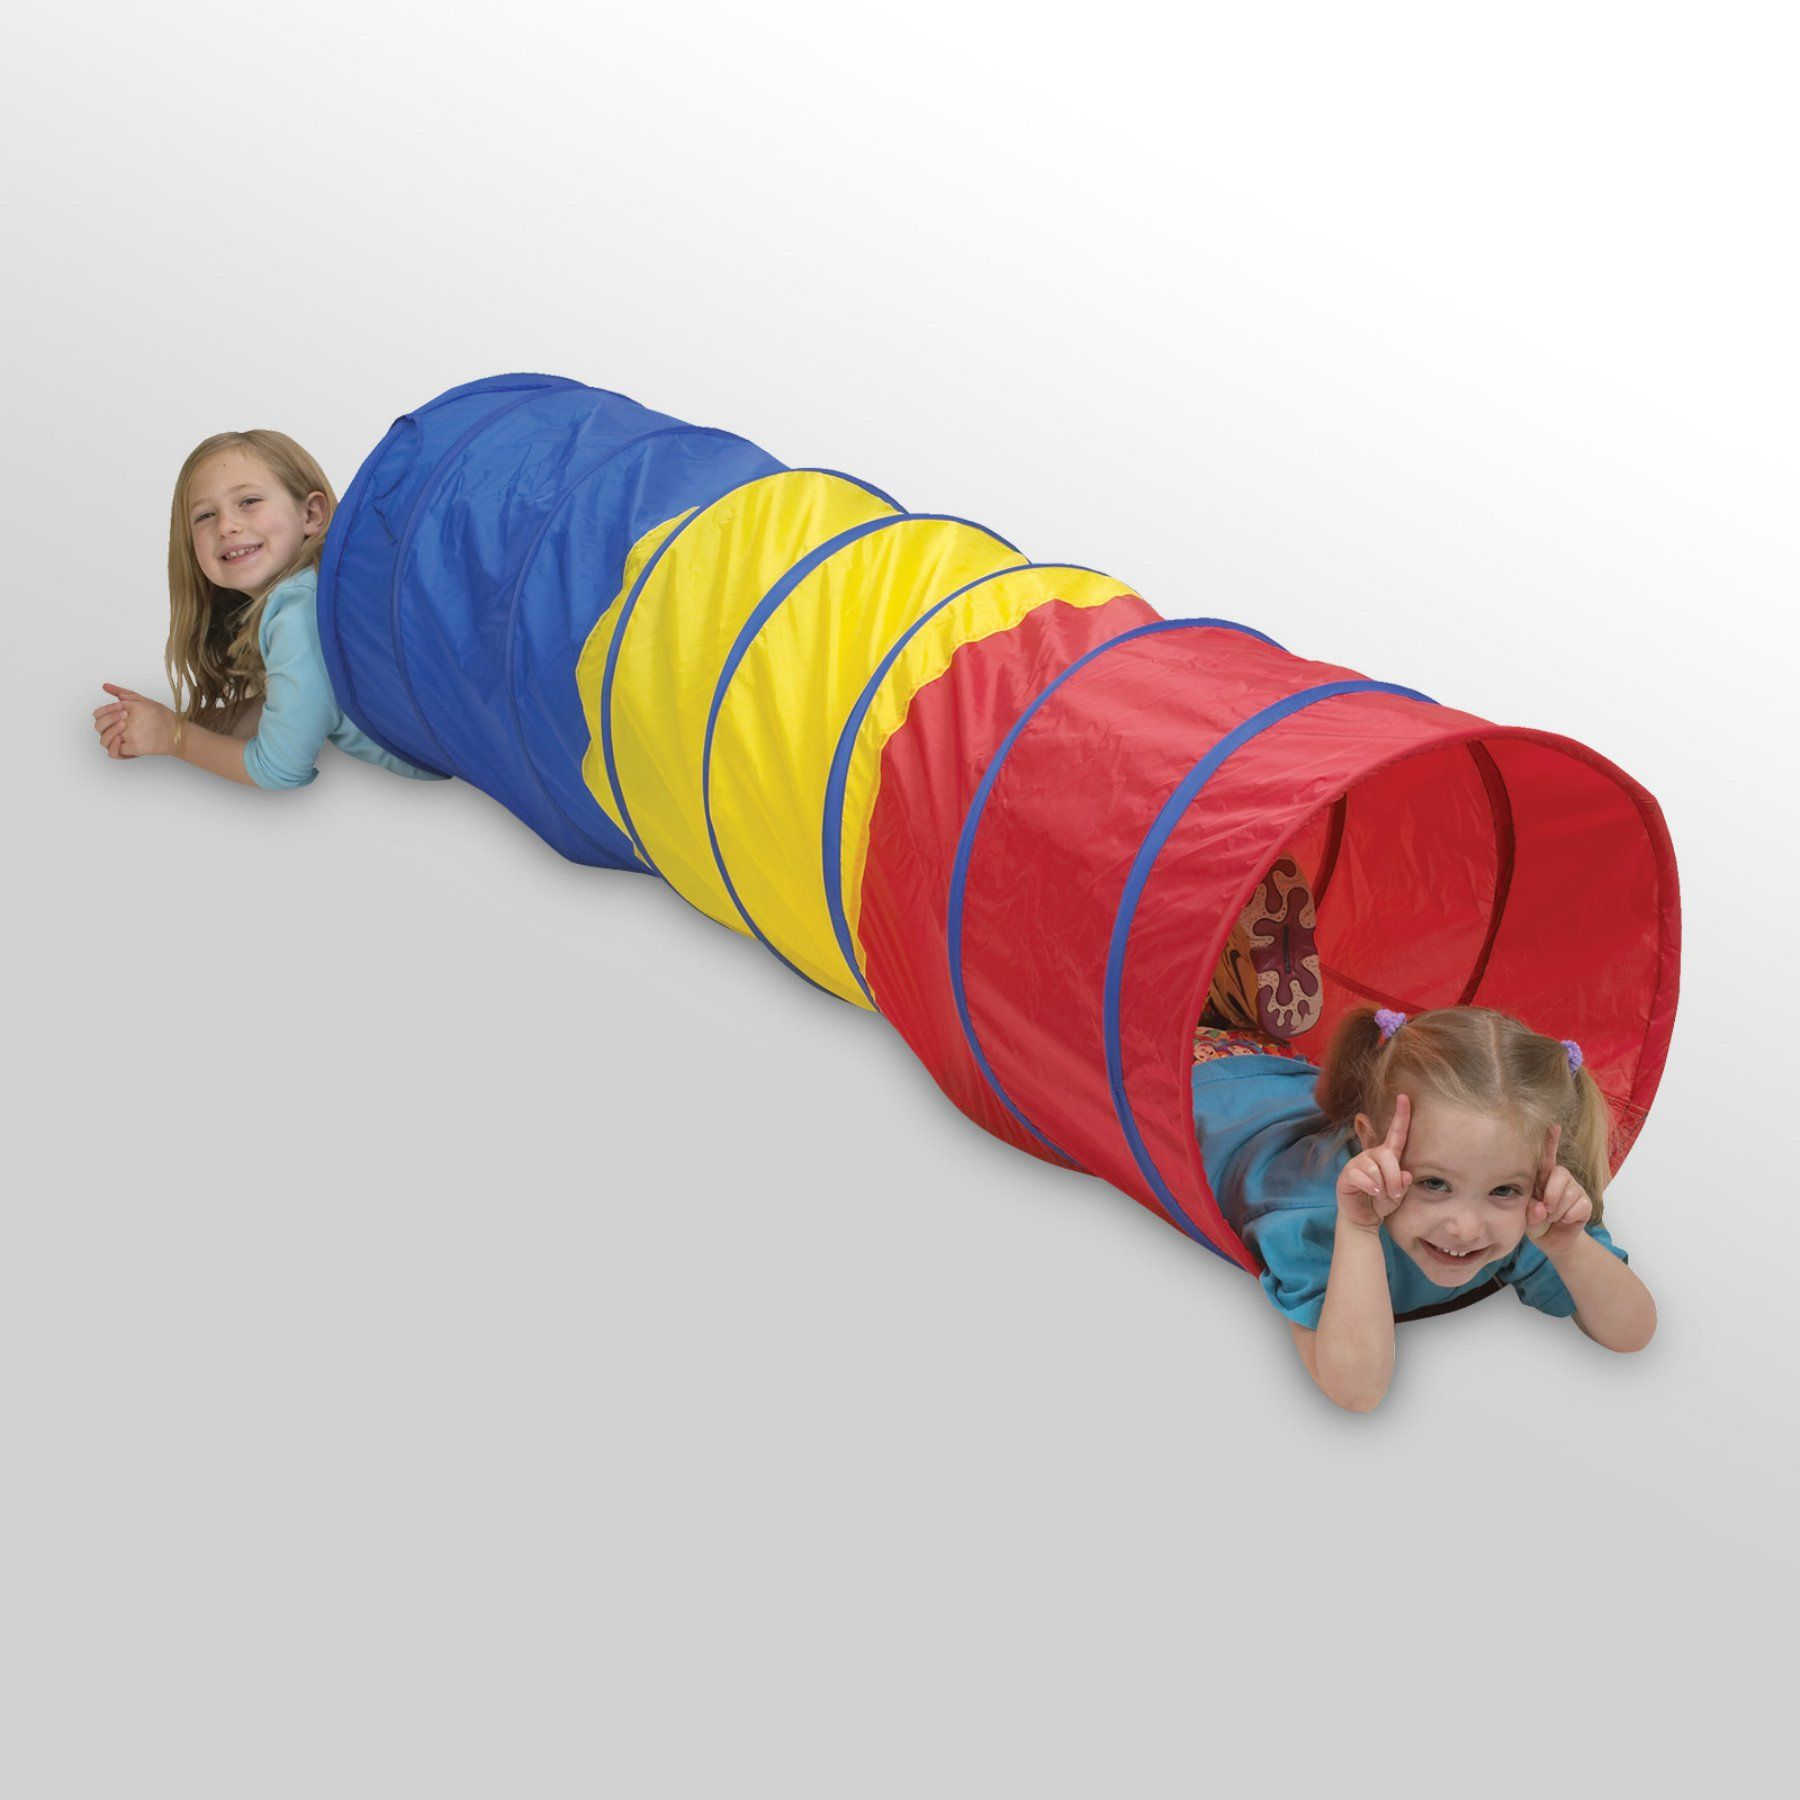 Pacific Play Tents Find Me Multi-Colored Tunnel - 20409  sc 1 st  Pinterest & Pacific Play Tents Find Me Multi-Colored Tunnel - 20409 | Products